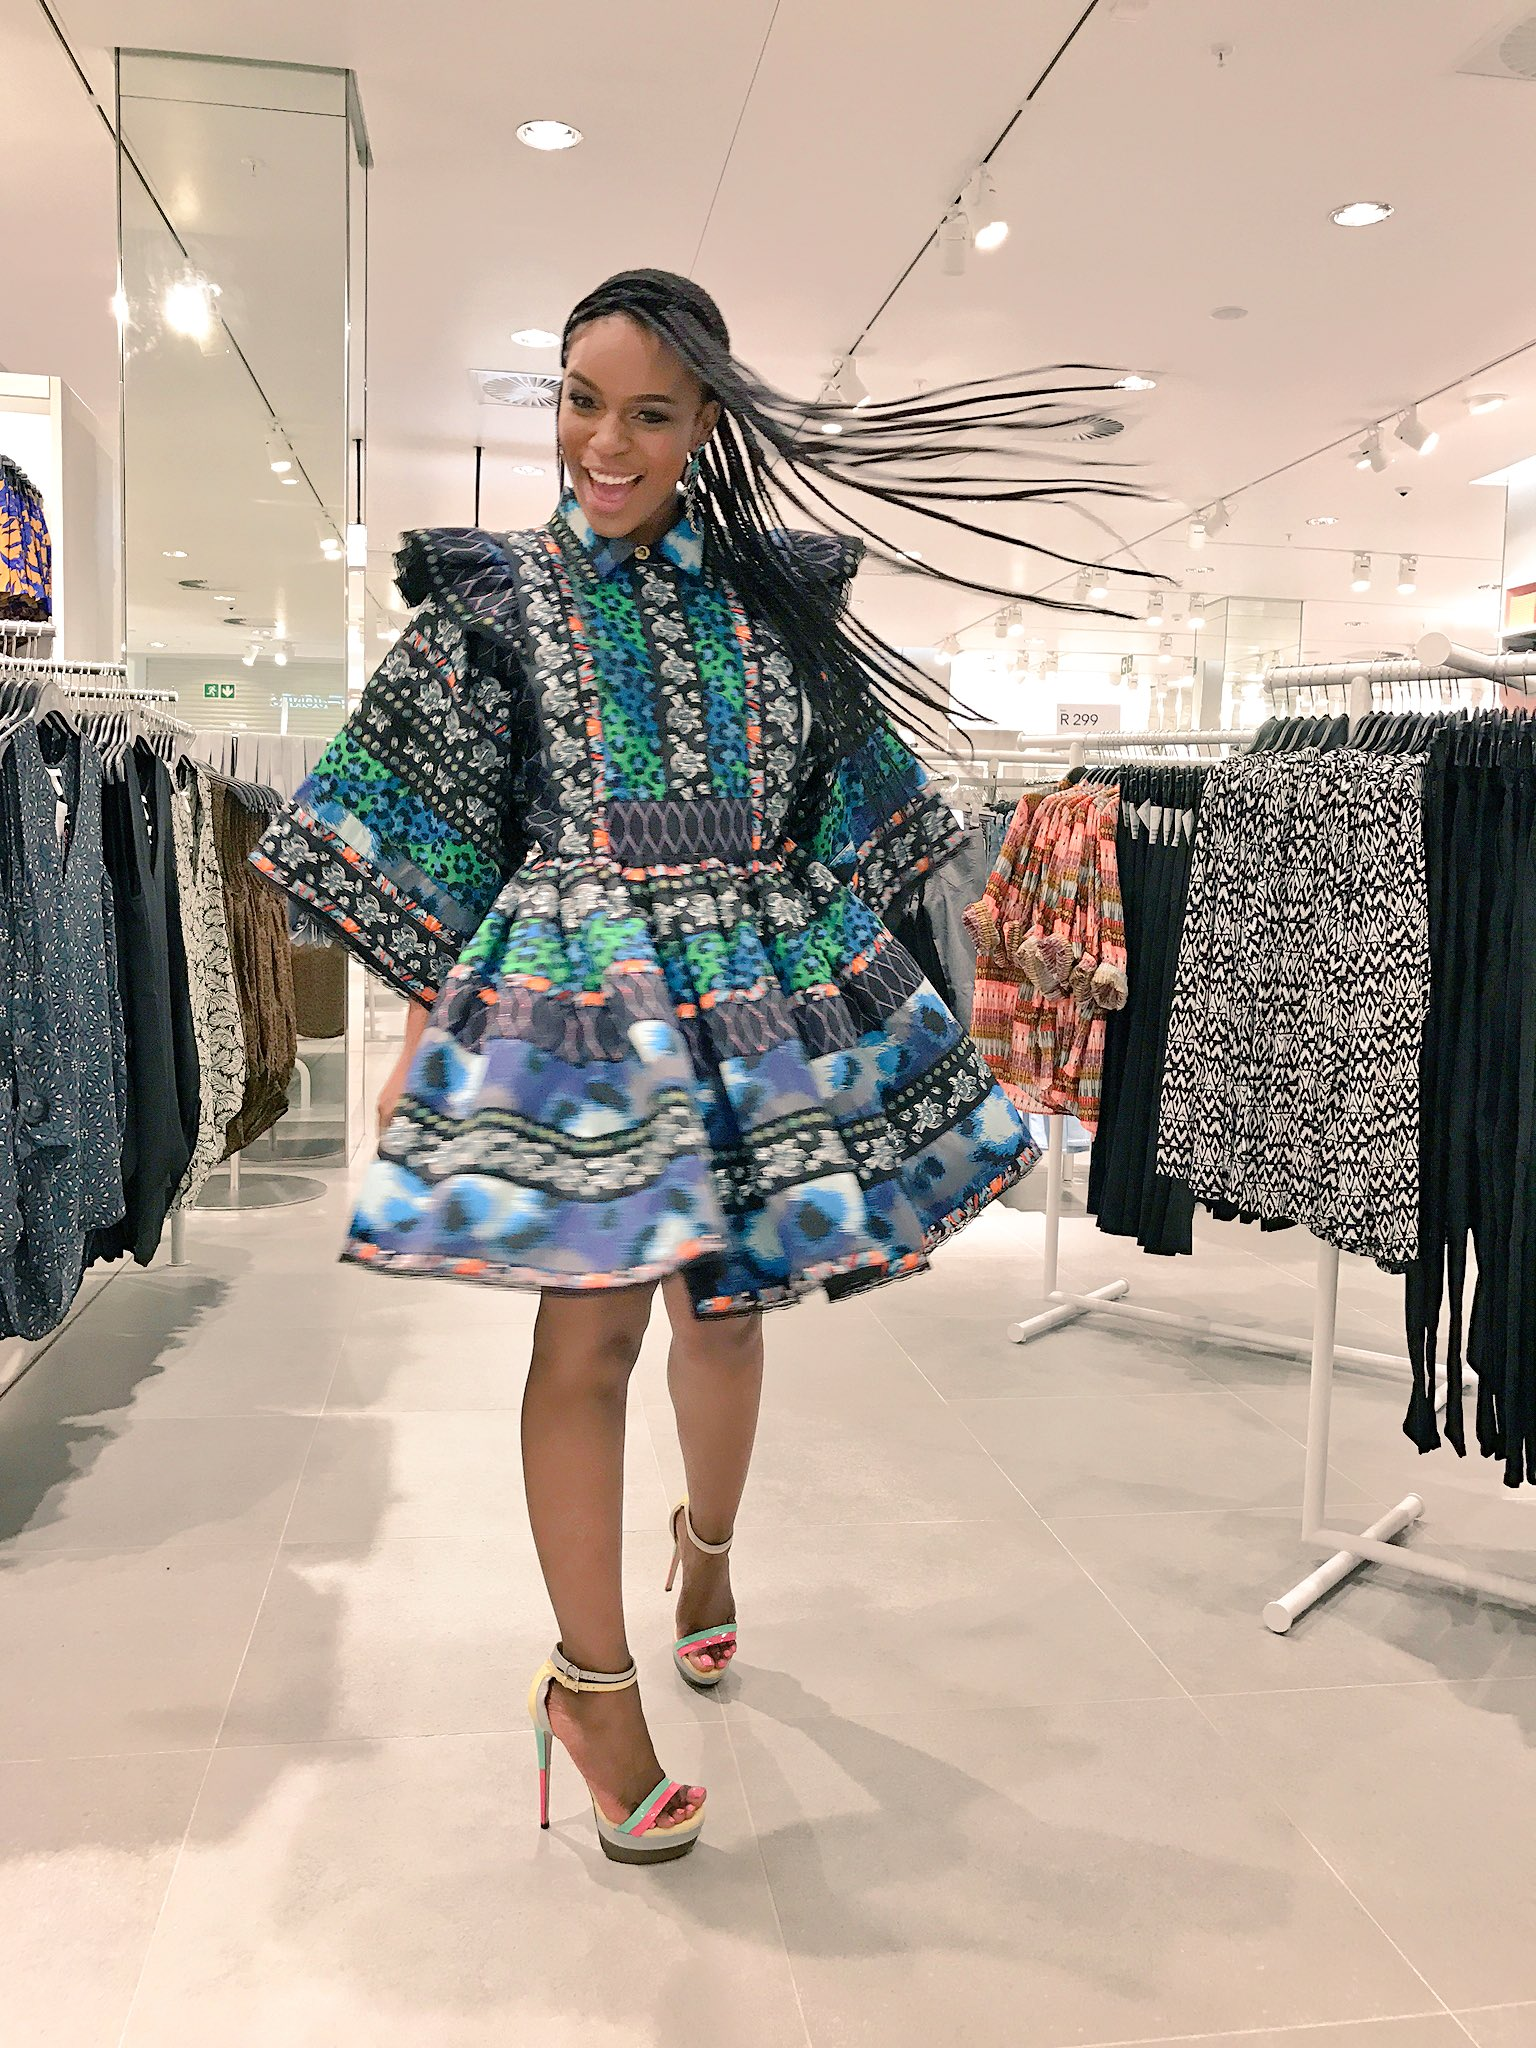 nomzamo mbatha on twitter   u0026quot thank you  hmsouthafrica for